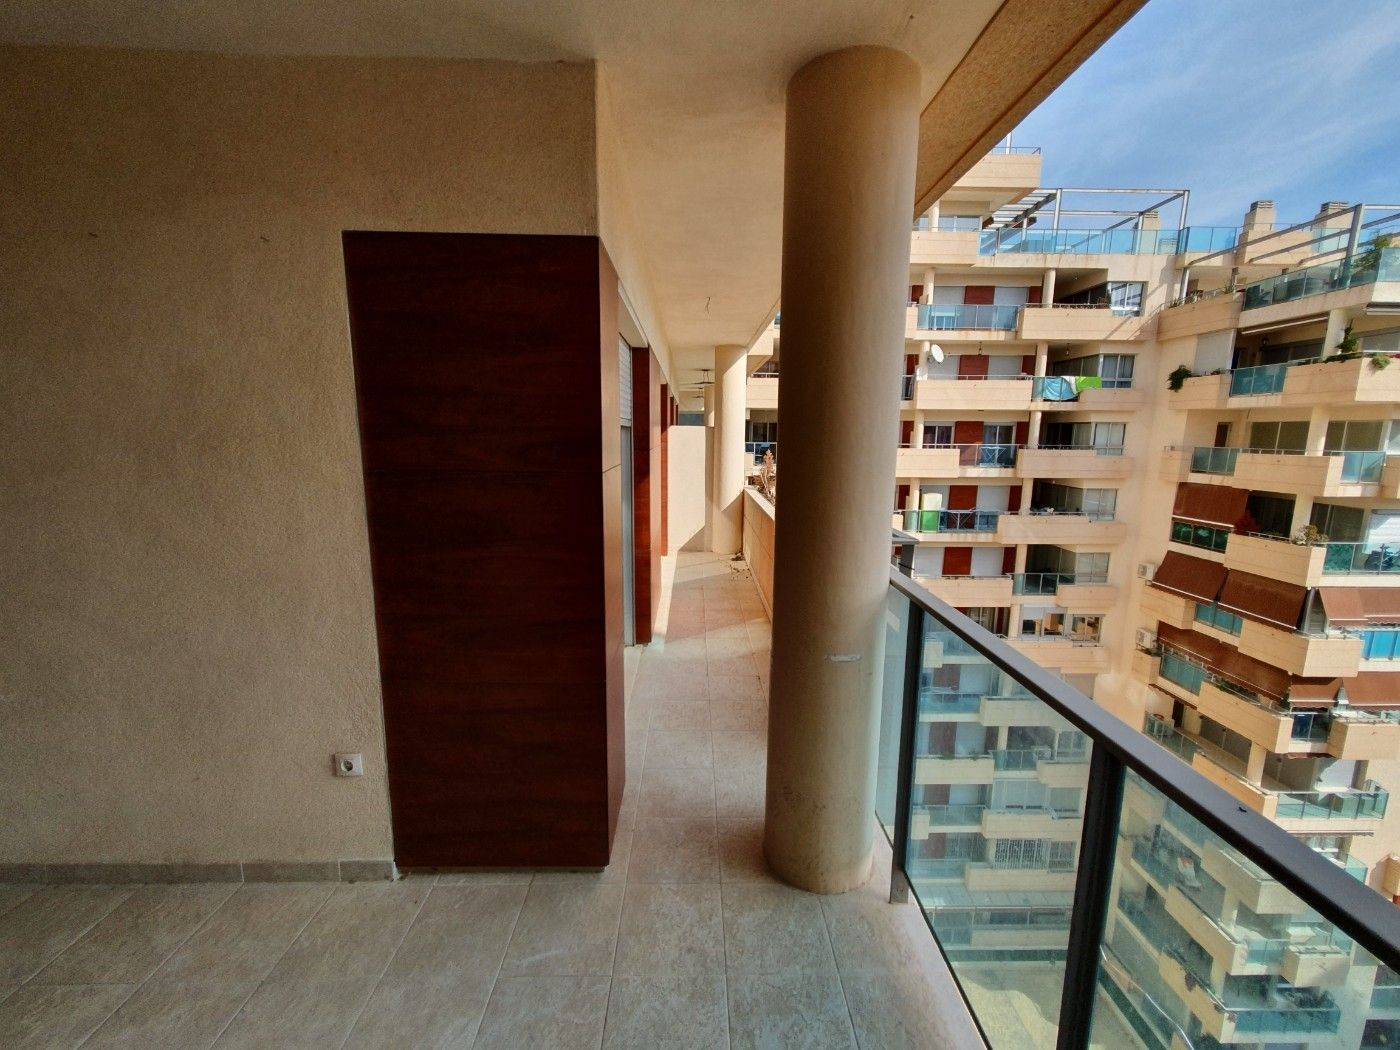 Apartment  Calle gregal. Cala finestrat-venta directa¡¡